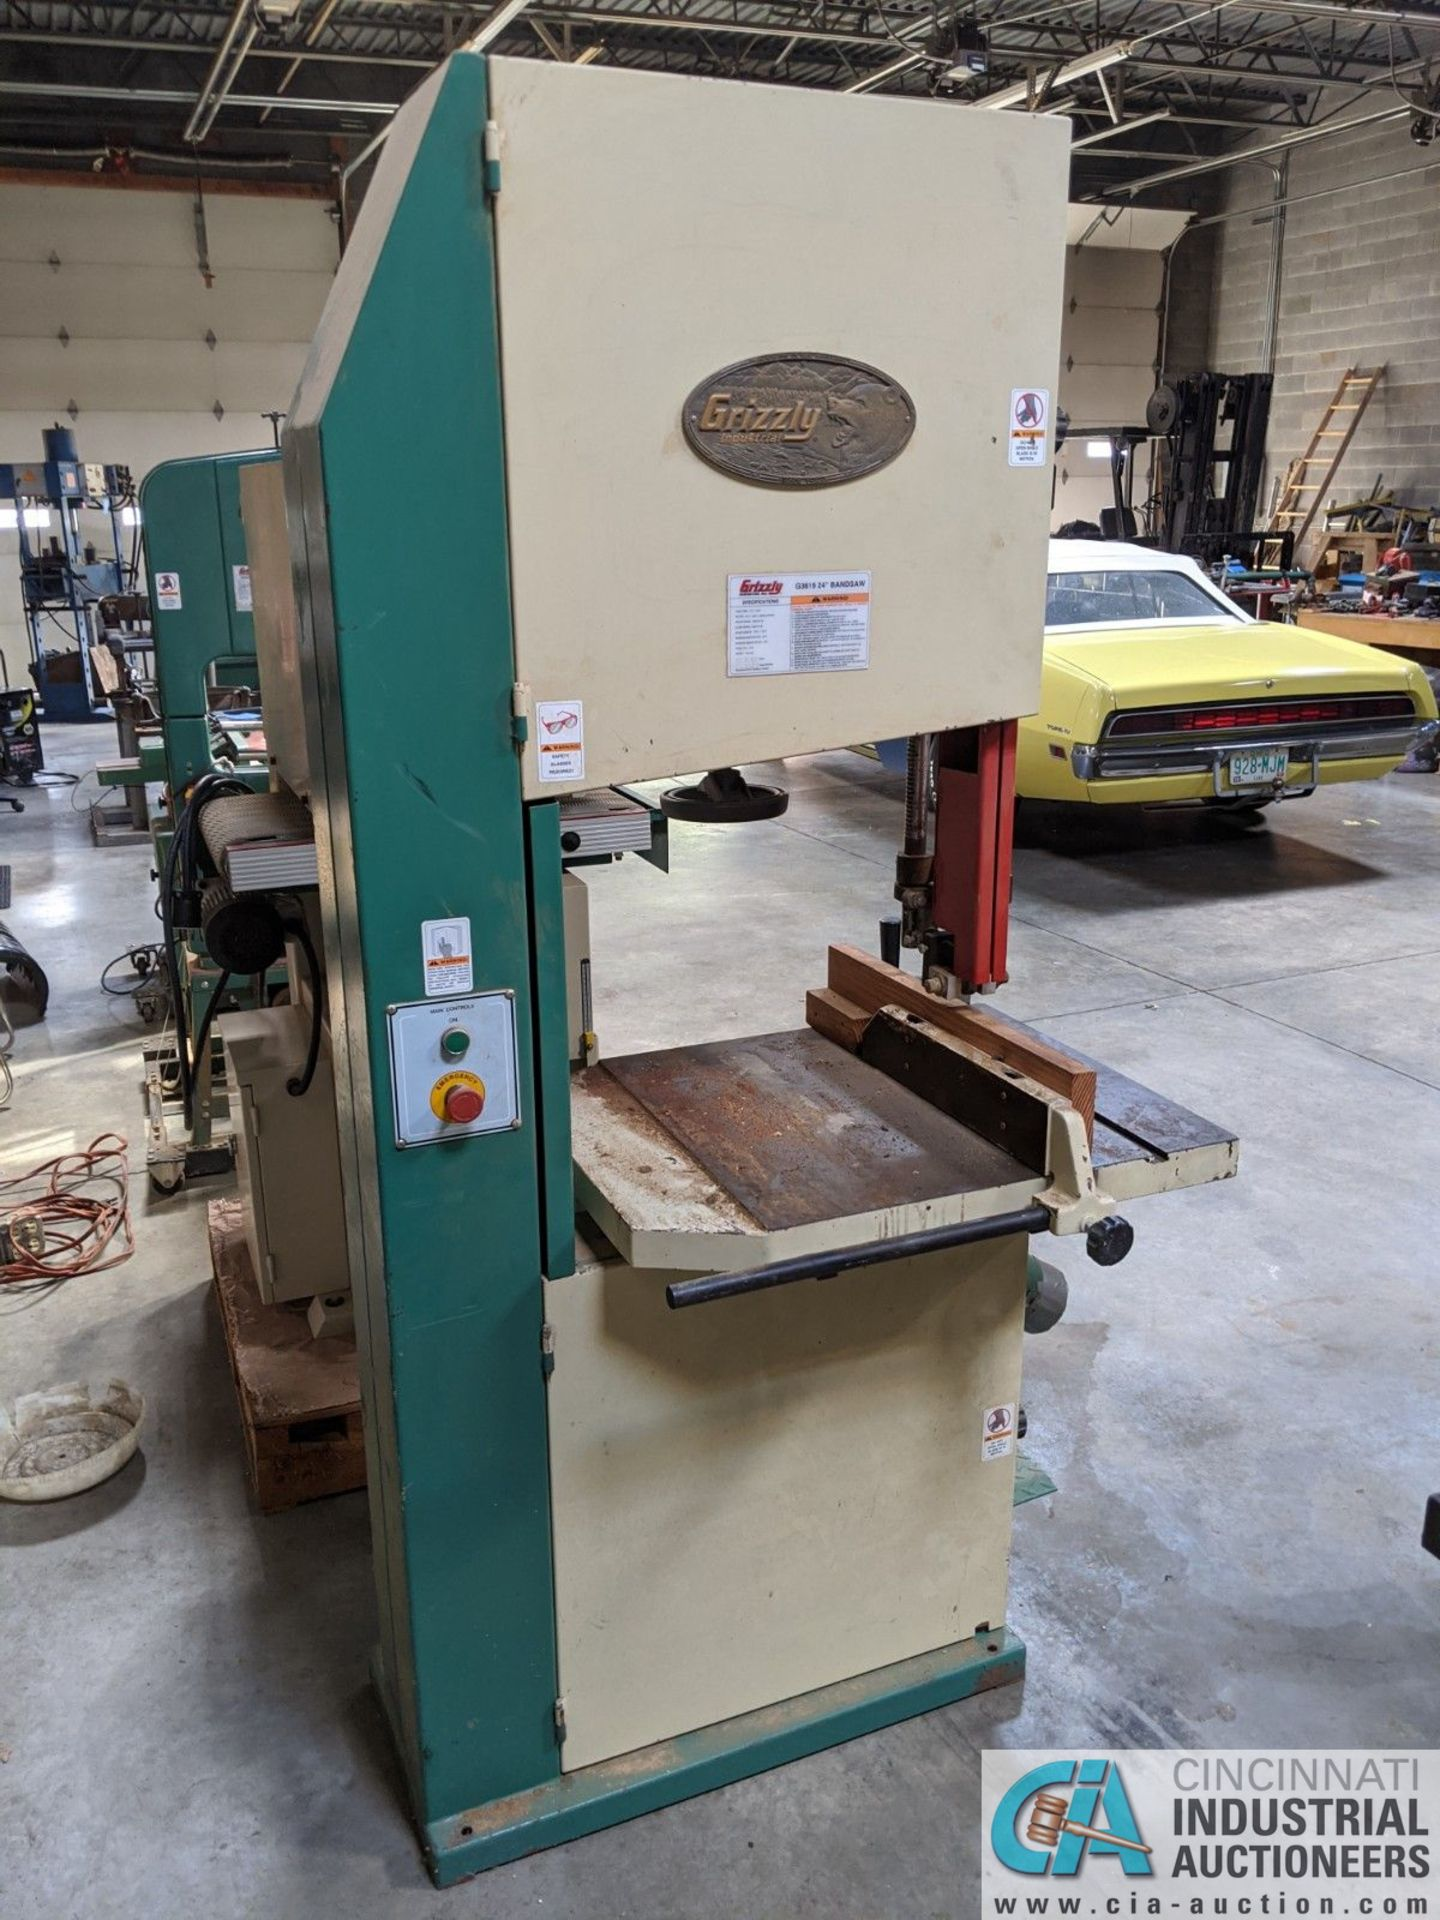 "12"" GRIZZLY MODEL G3619 VERTICAL BAND SAW; S/N 08146, 3-1/2"" X 23-3/4"" TABLE, 5-HP, SINGLE PHASE ( - Image 2 of 6"